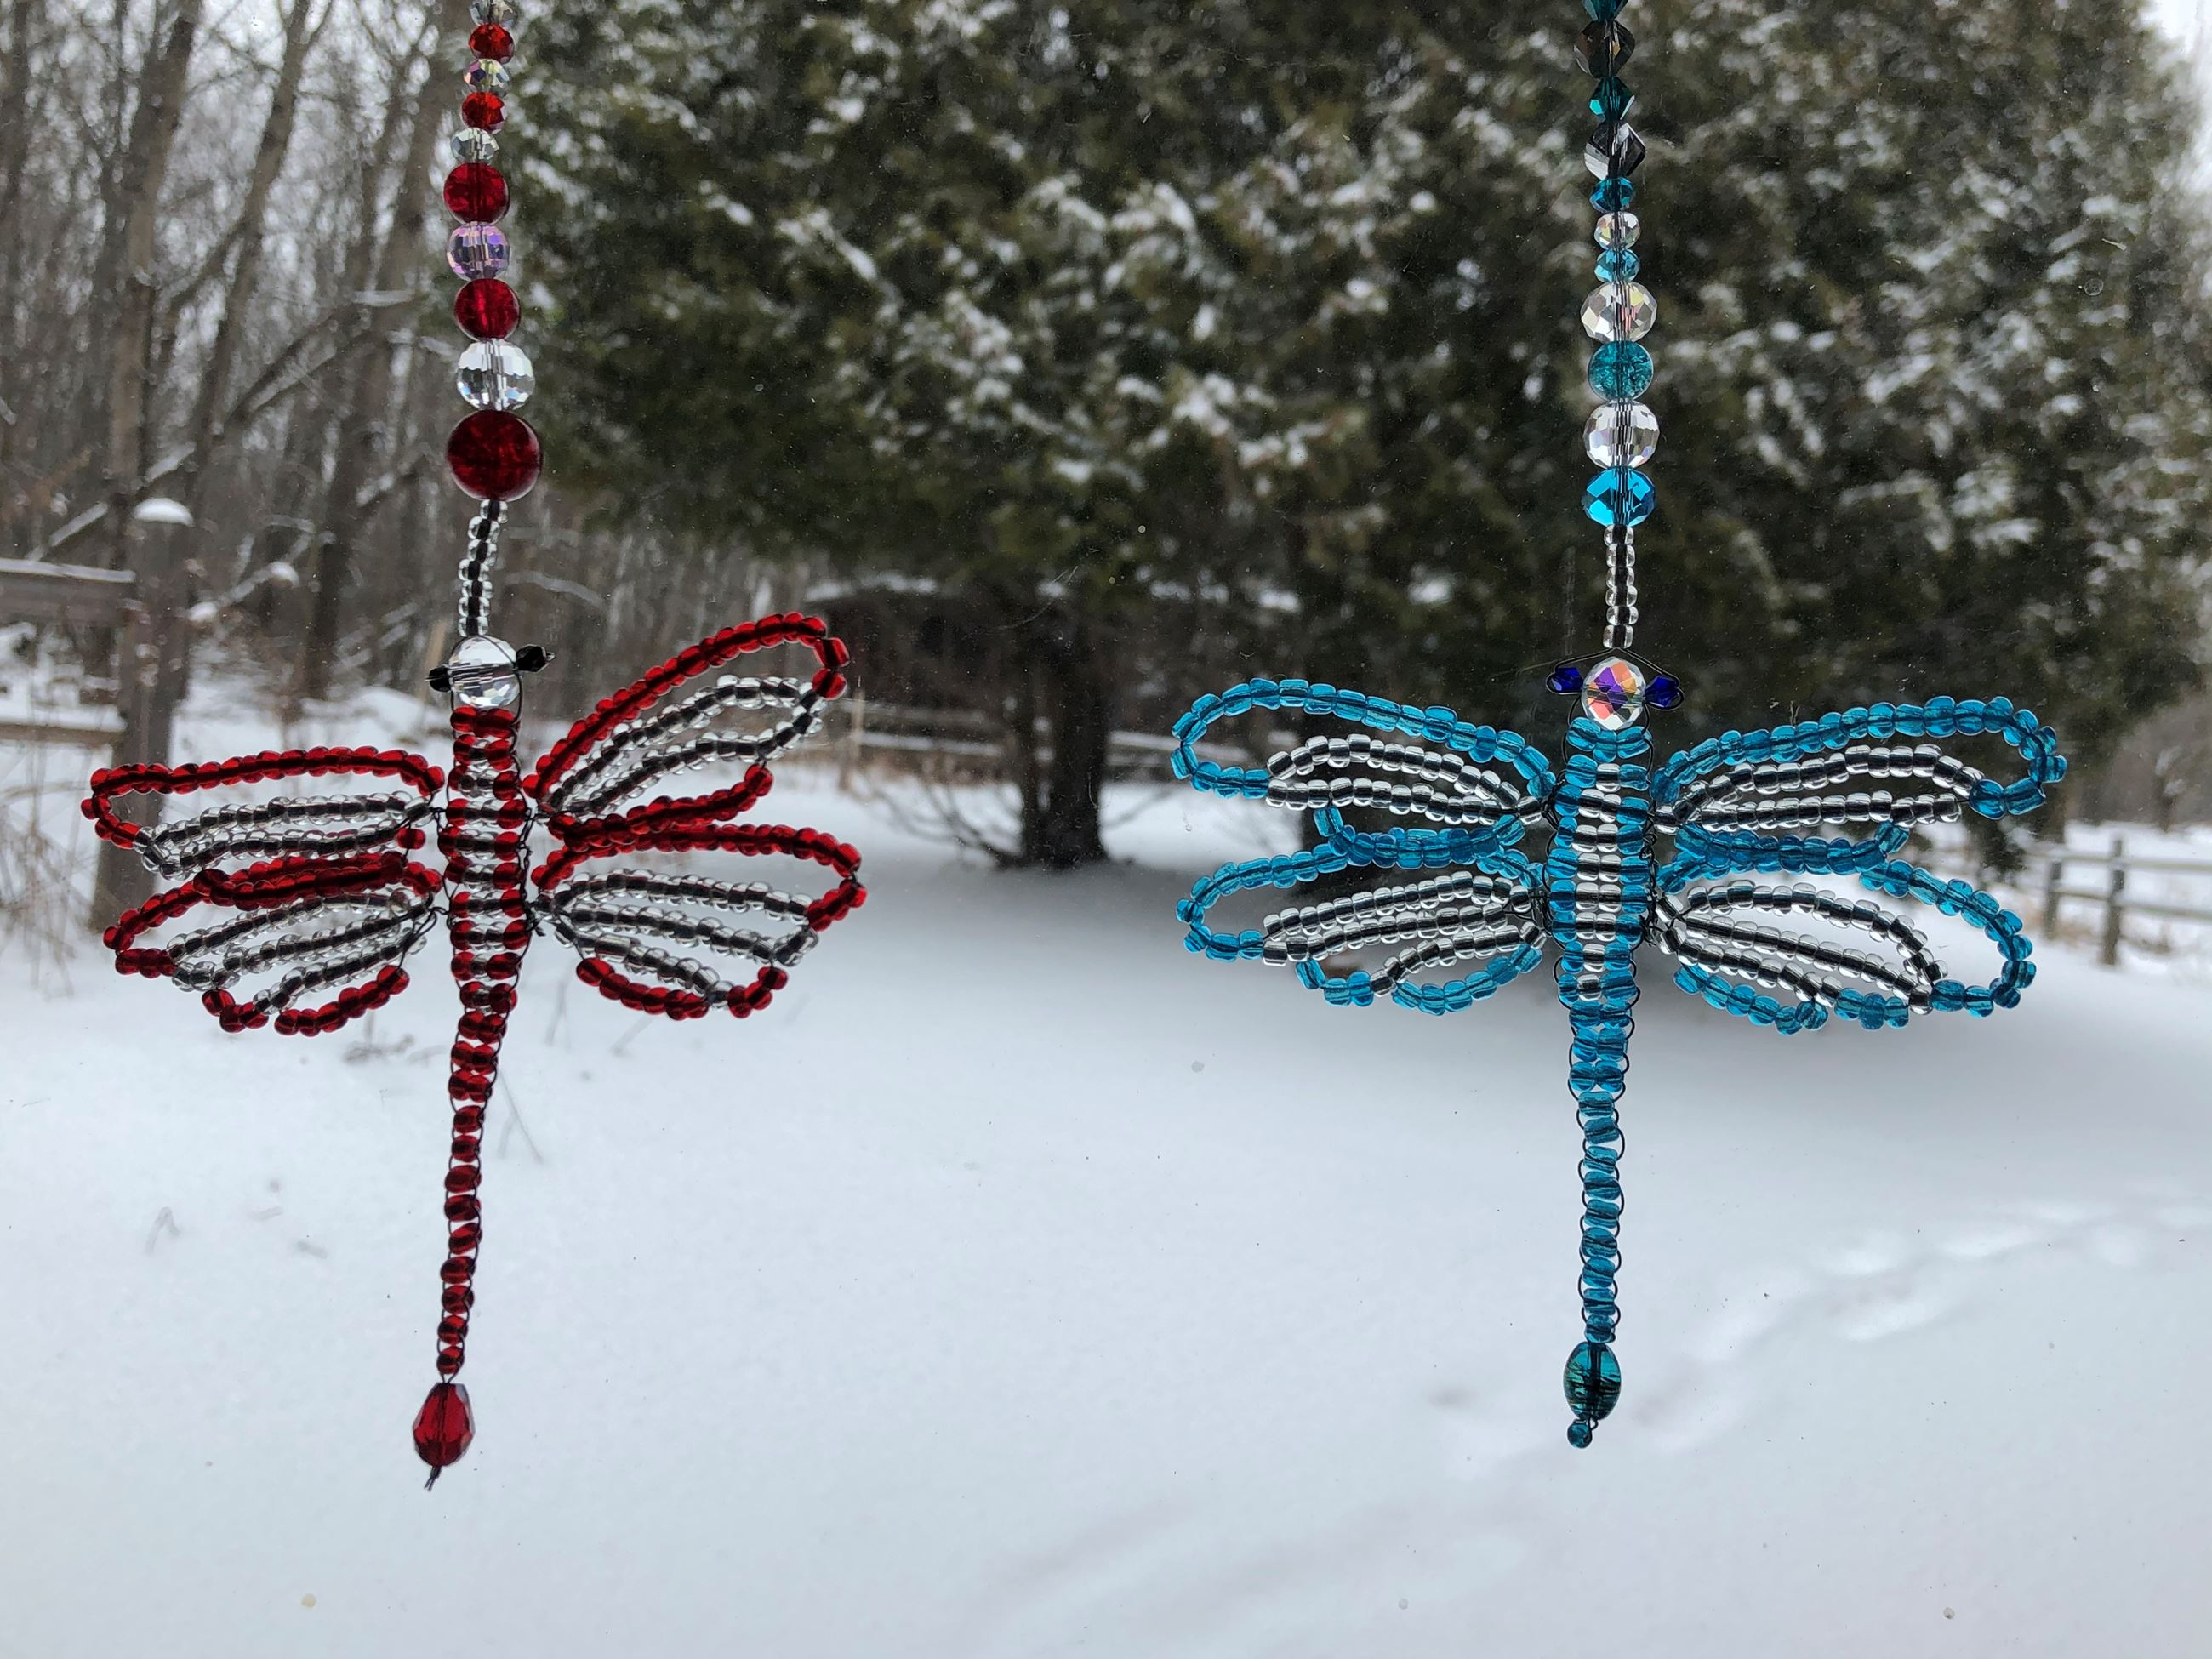 Two dragonfly sun catchers  made from beads. One is blue and the other is red and they are hanging i